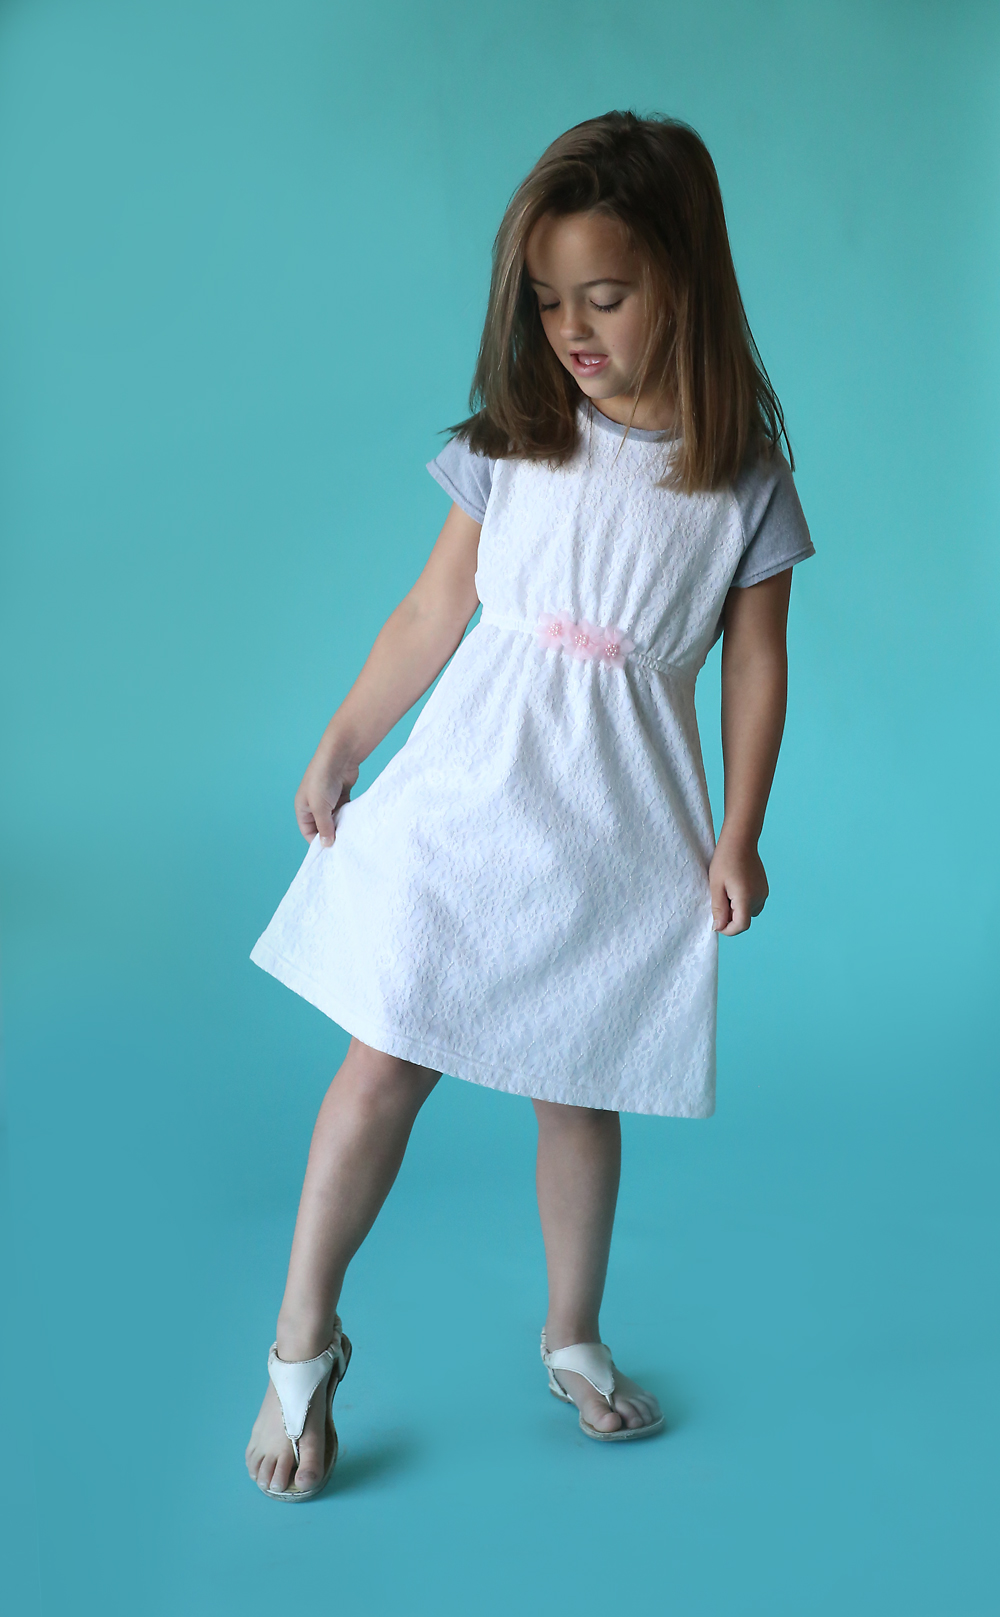 how to make a cute dress without sewing